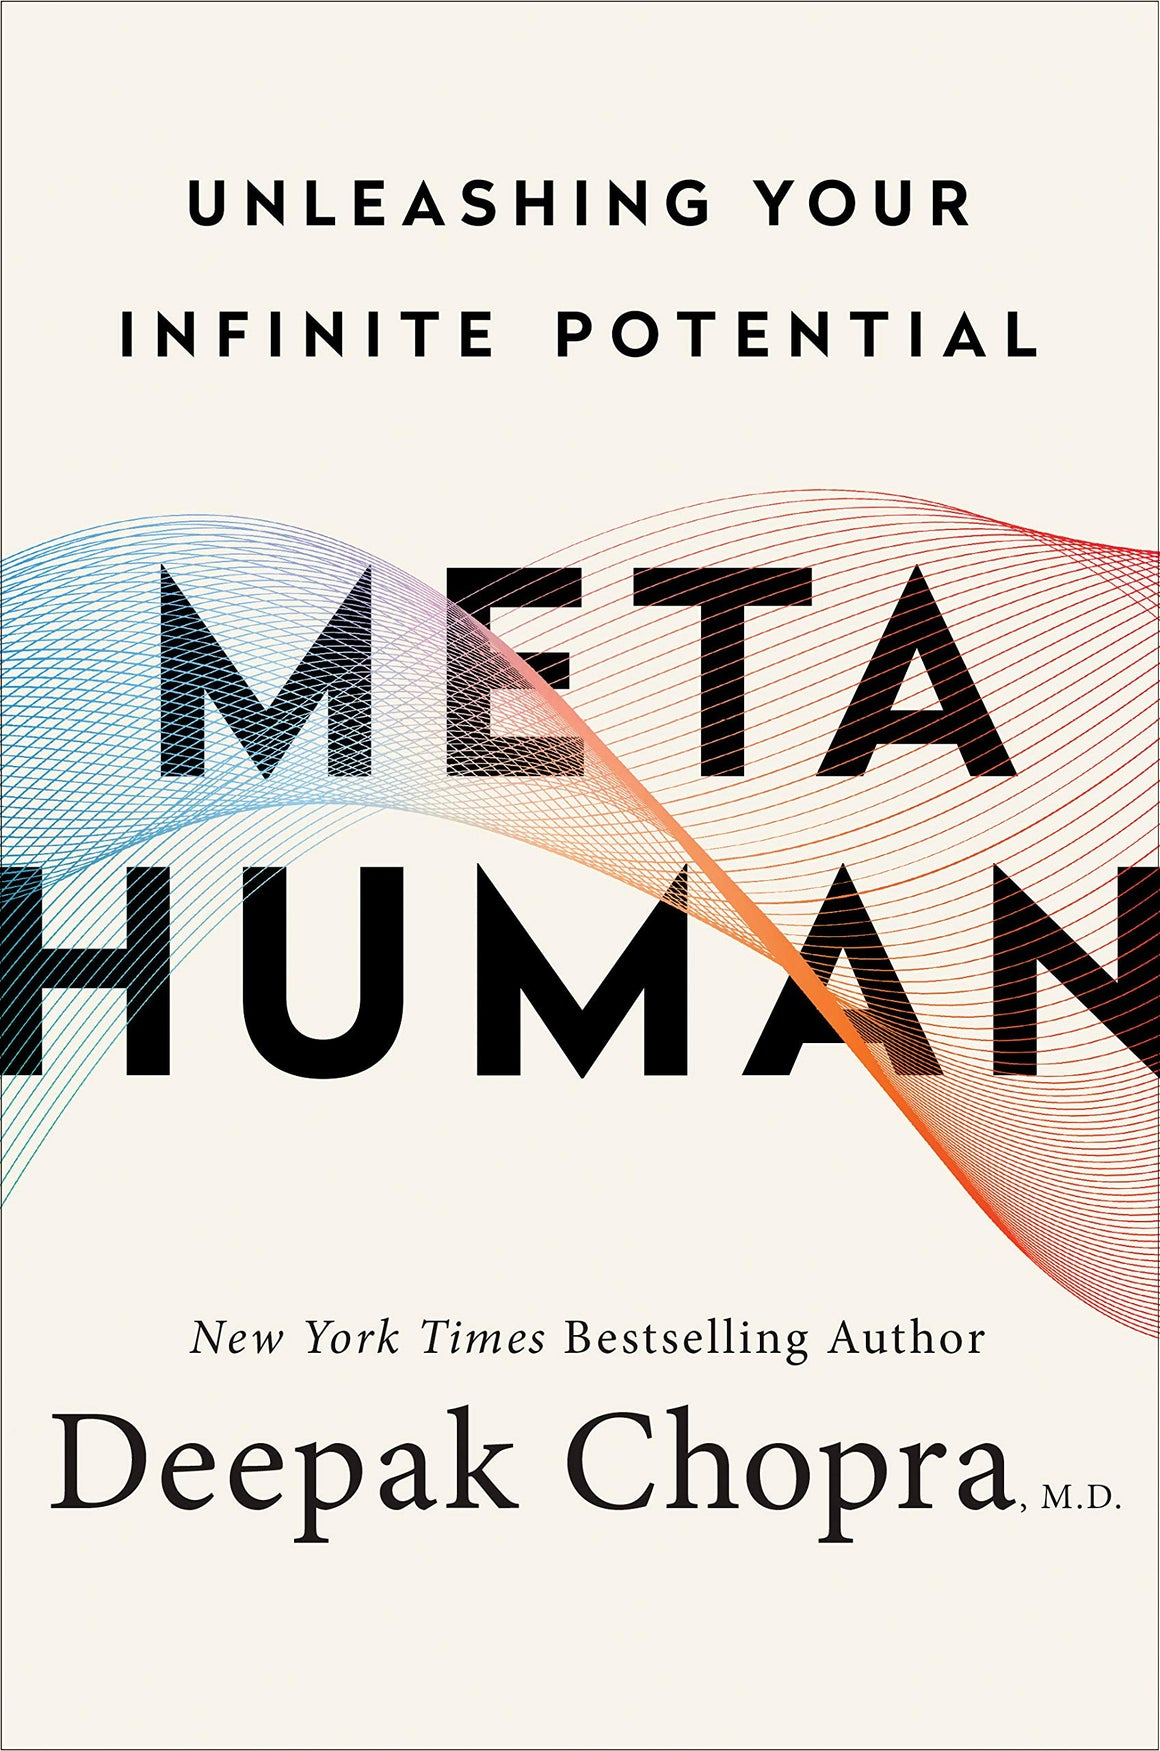 Metahuman Unleashing Your Infinite Potential by Deepak Chopra